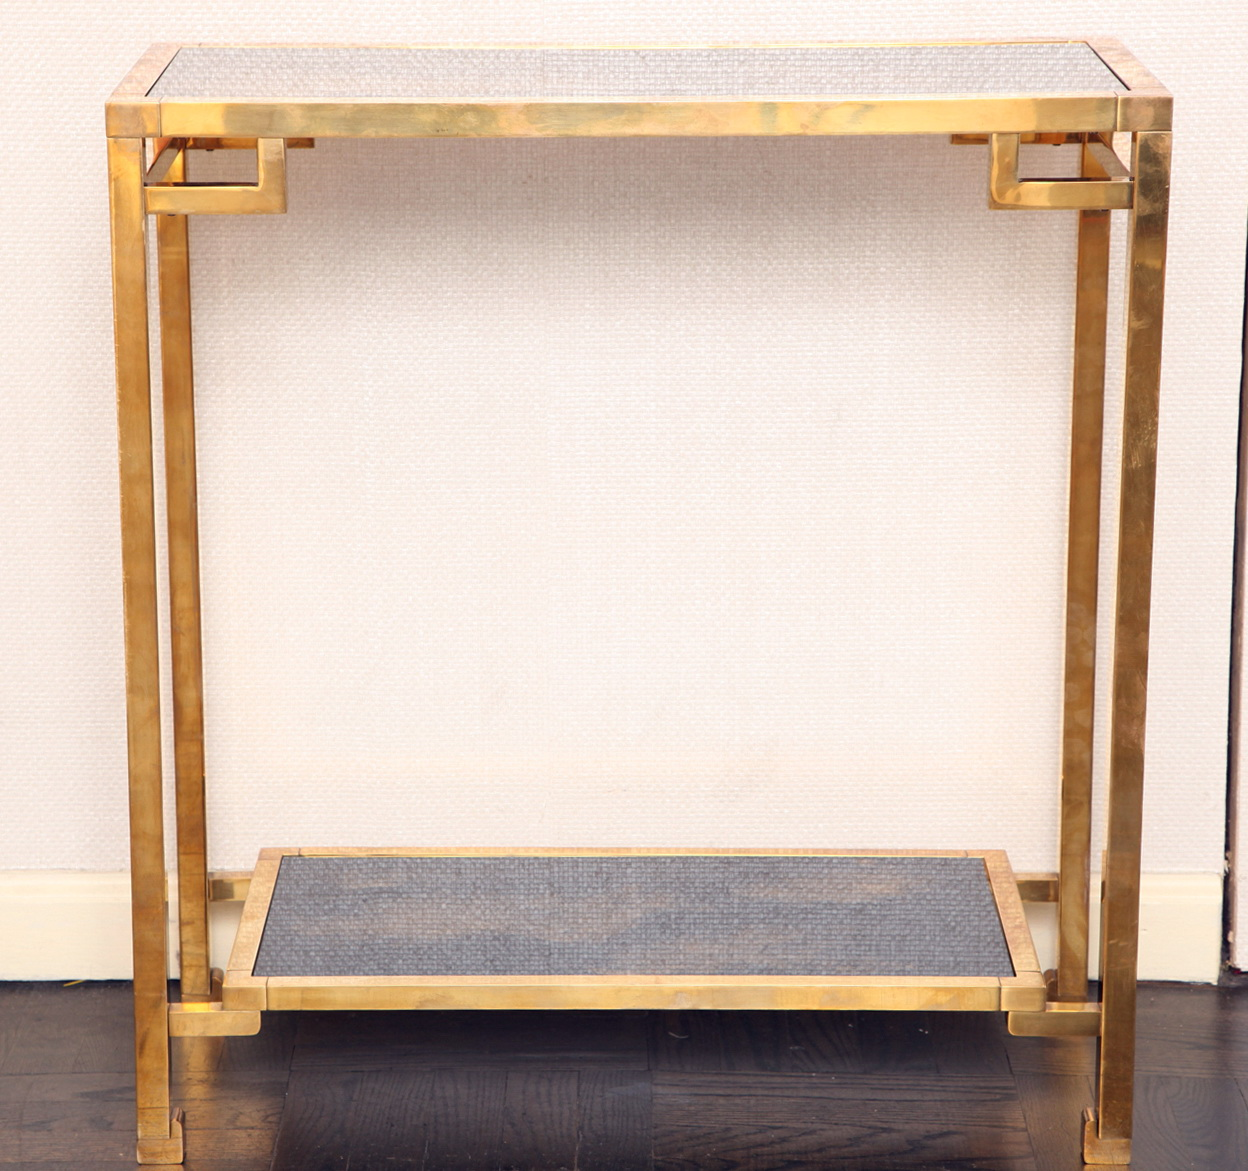 sofa cushions online canada maverick leather reviews small gold console table   home design ideas